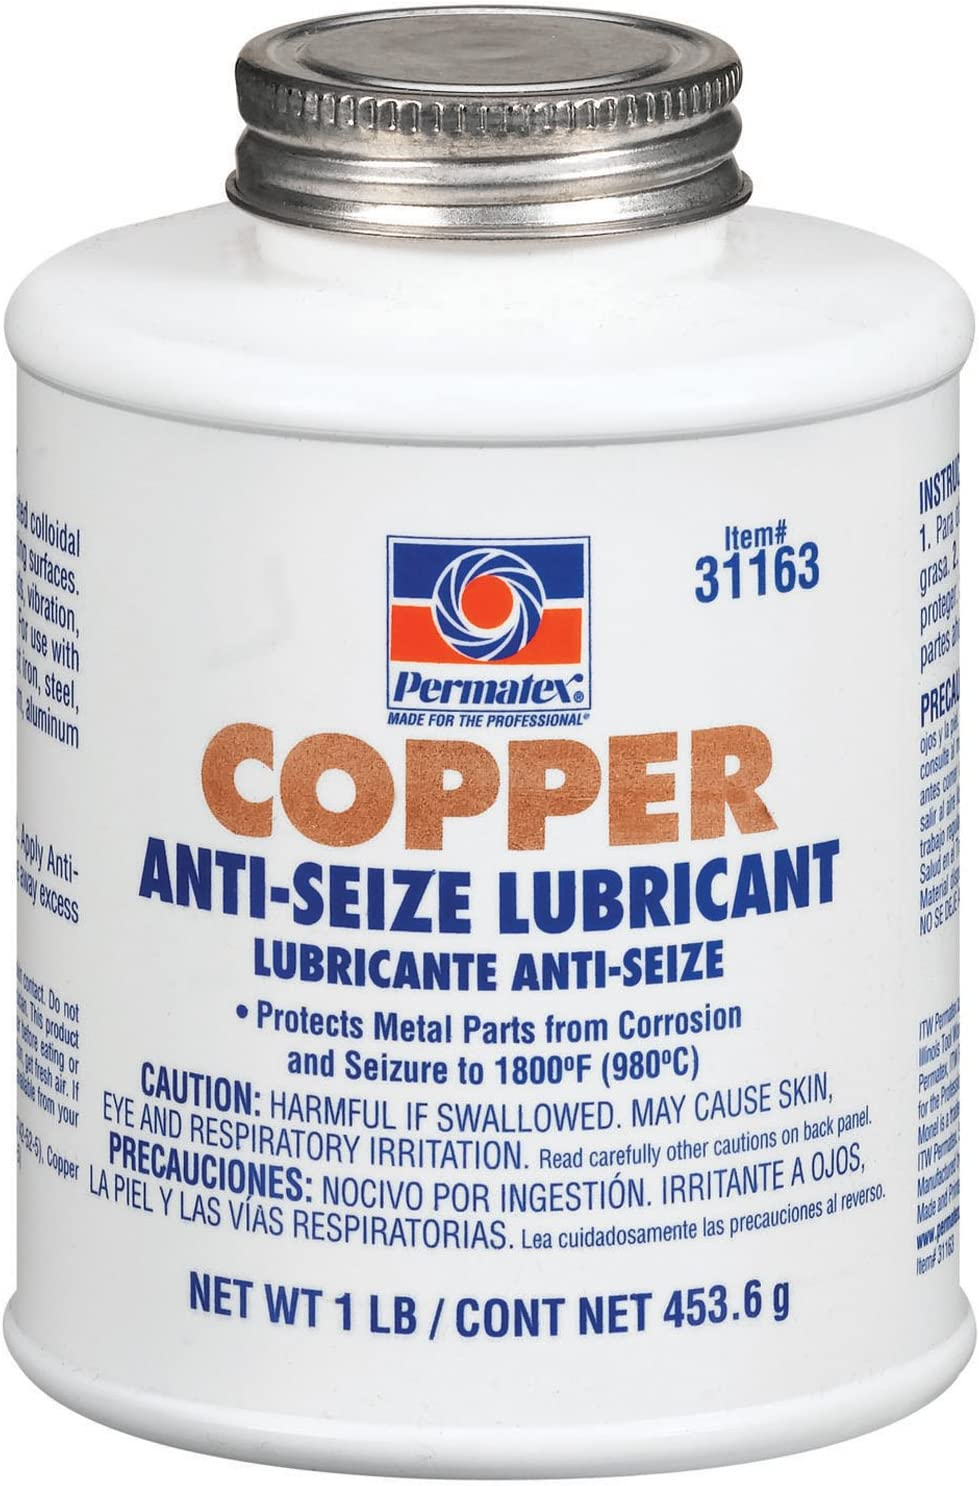 Permatex 31163 Copper Anti-Seize Lubricant, 1 lb